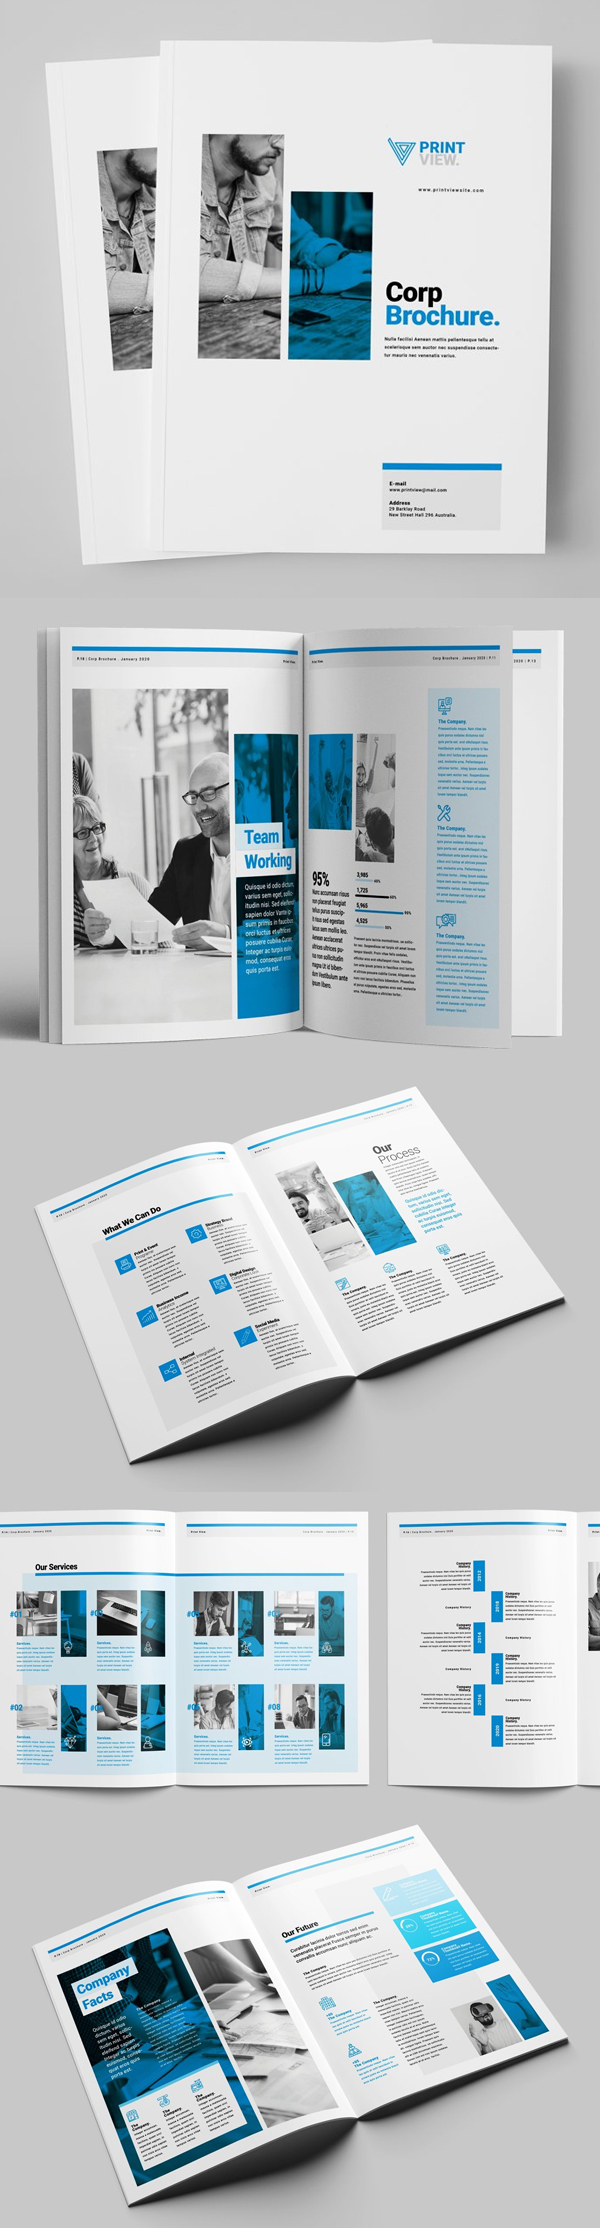 Corporate Brochure Design Template